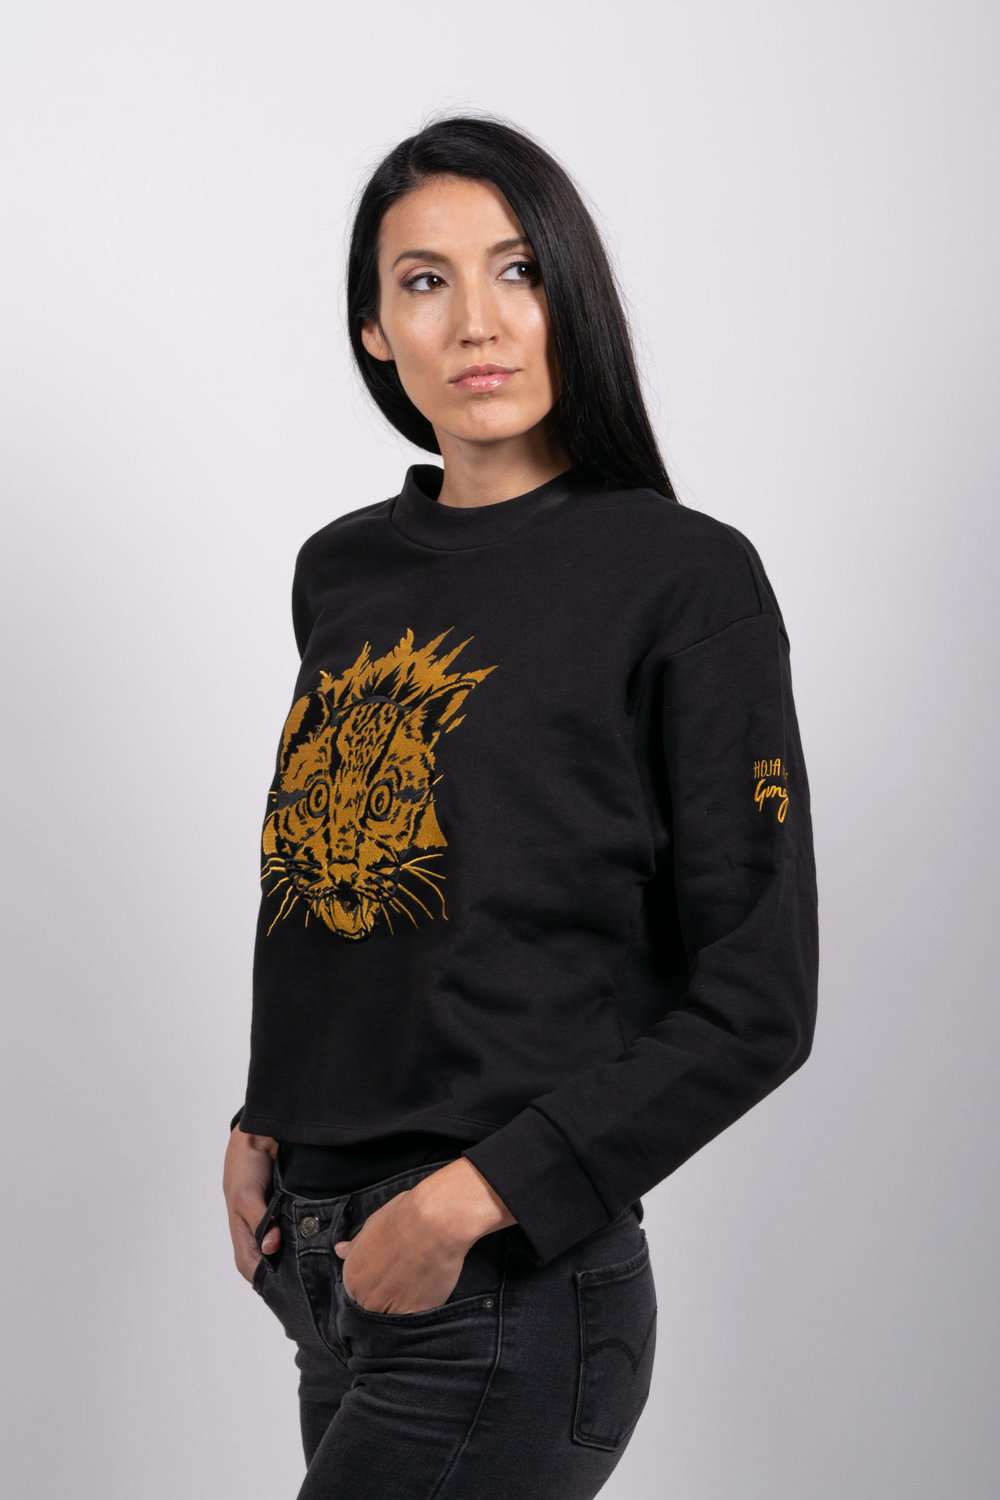 Shop: http://hojanueva.org/product-category/clothing/